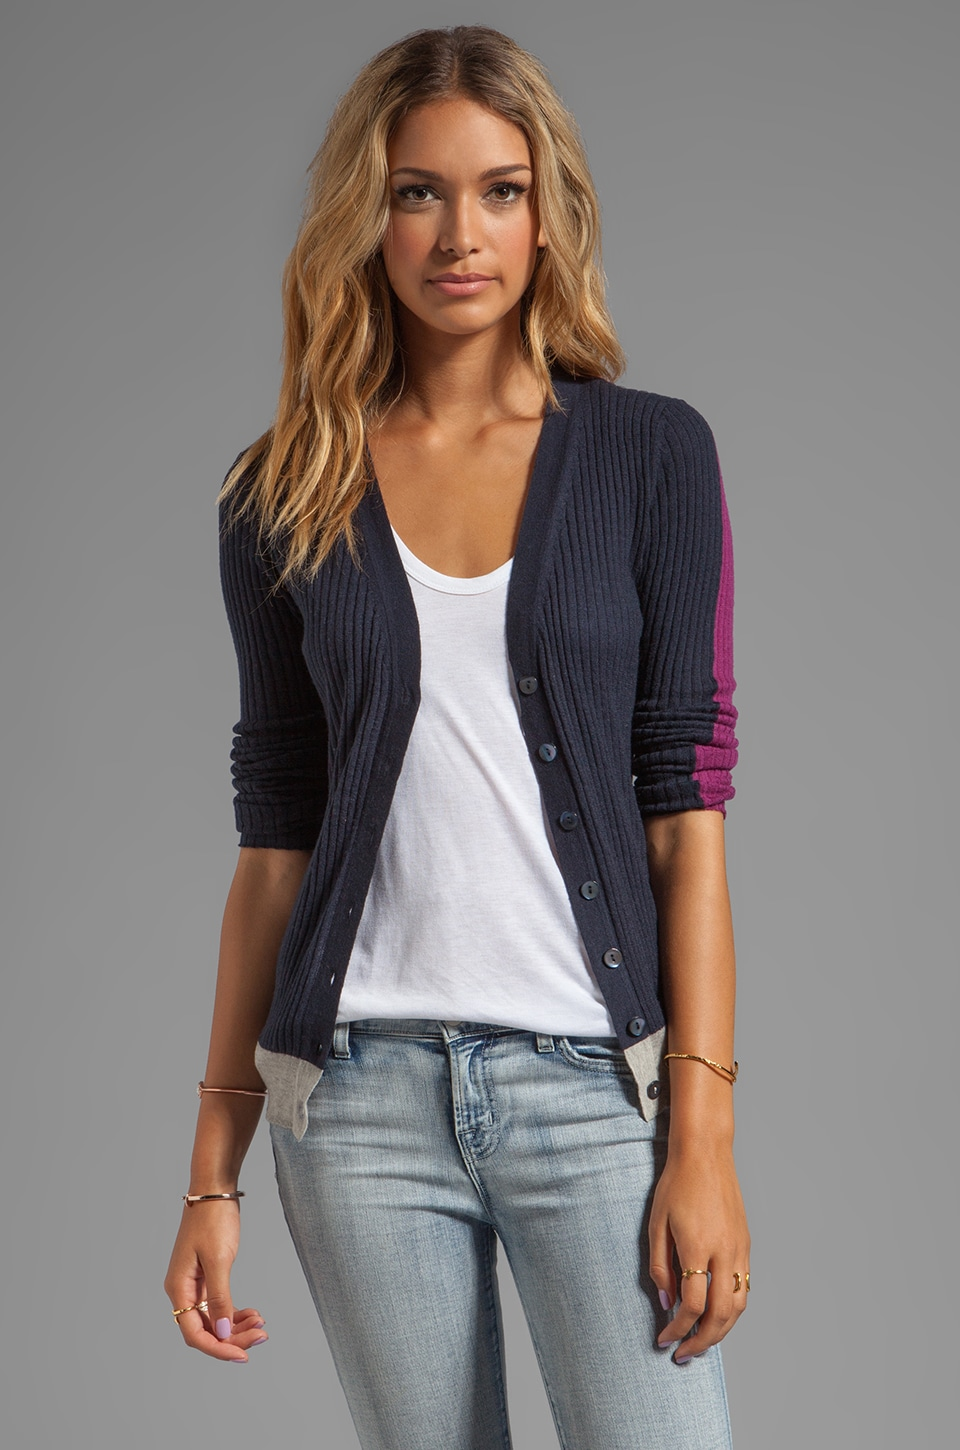 Autumn Cashmere Tissue Cashmere Ribbed Color Block V Neck Cardigan in Birch/Navy/Pomegranate